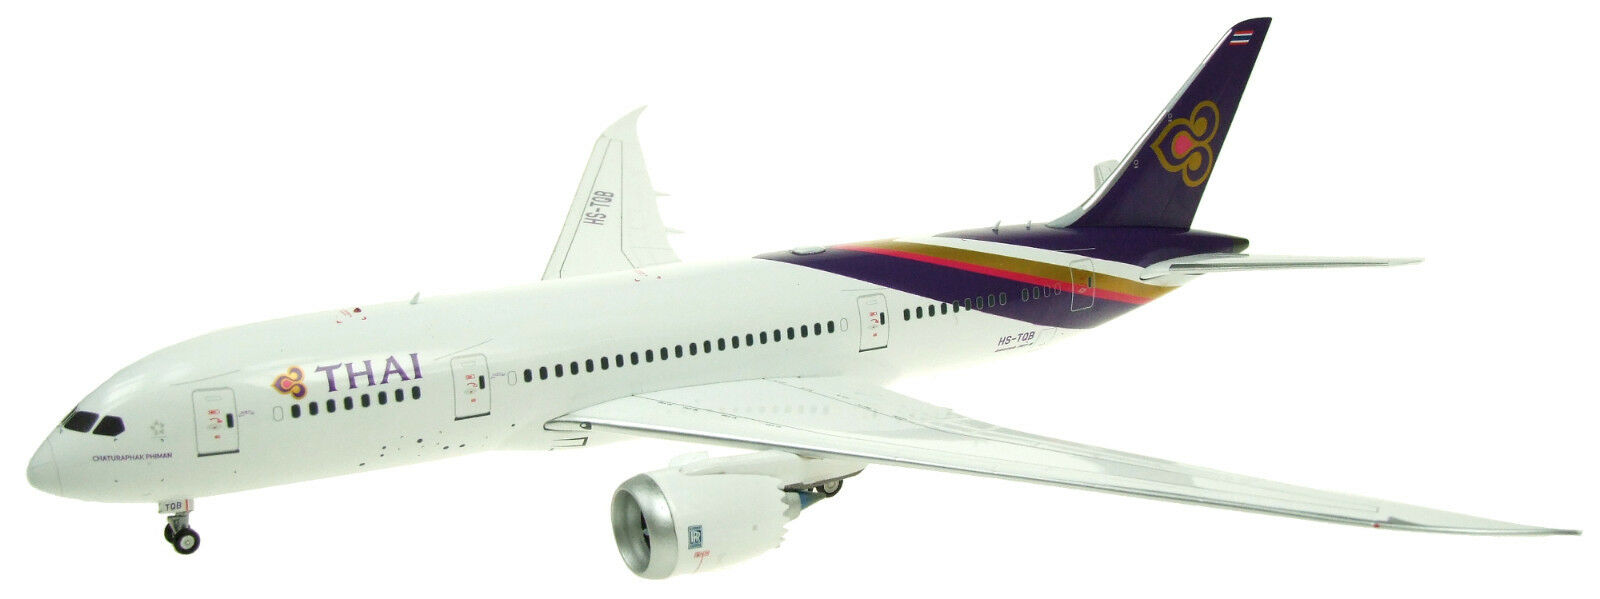 Inflight 200 IF7871116 1/200 Thai Airways International Boeing 787-8 Hs-tqb